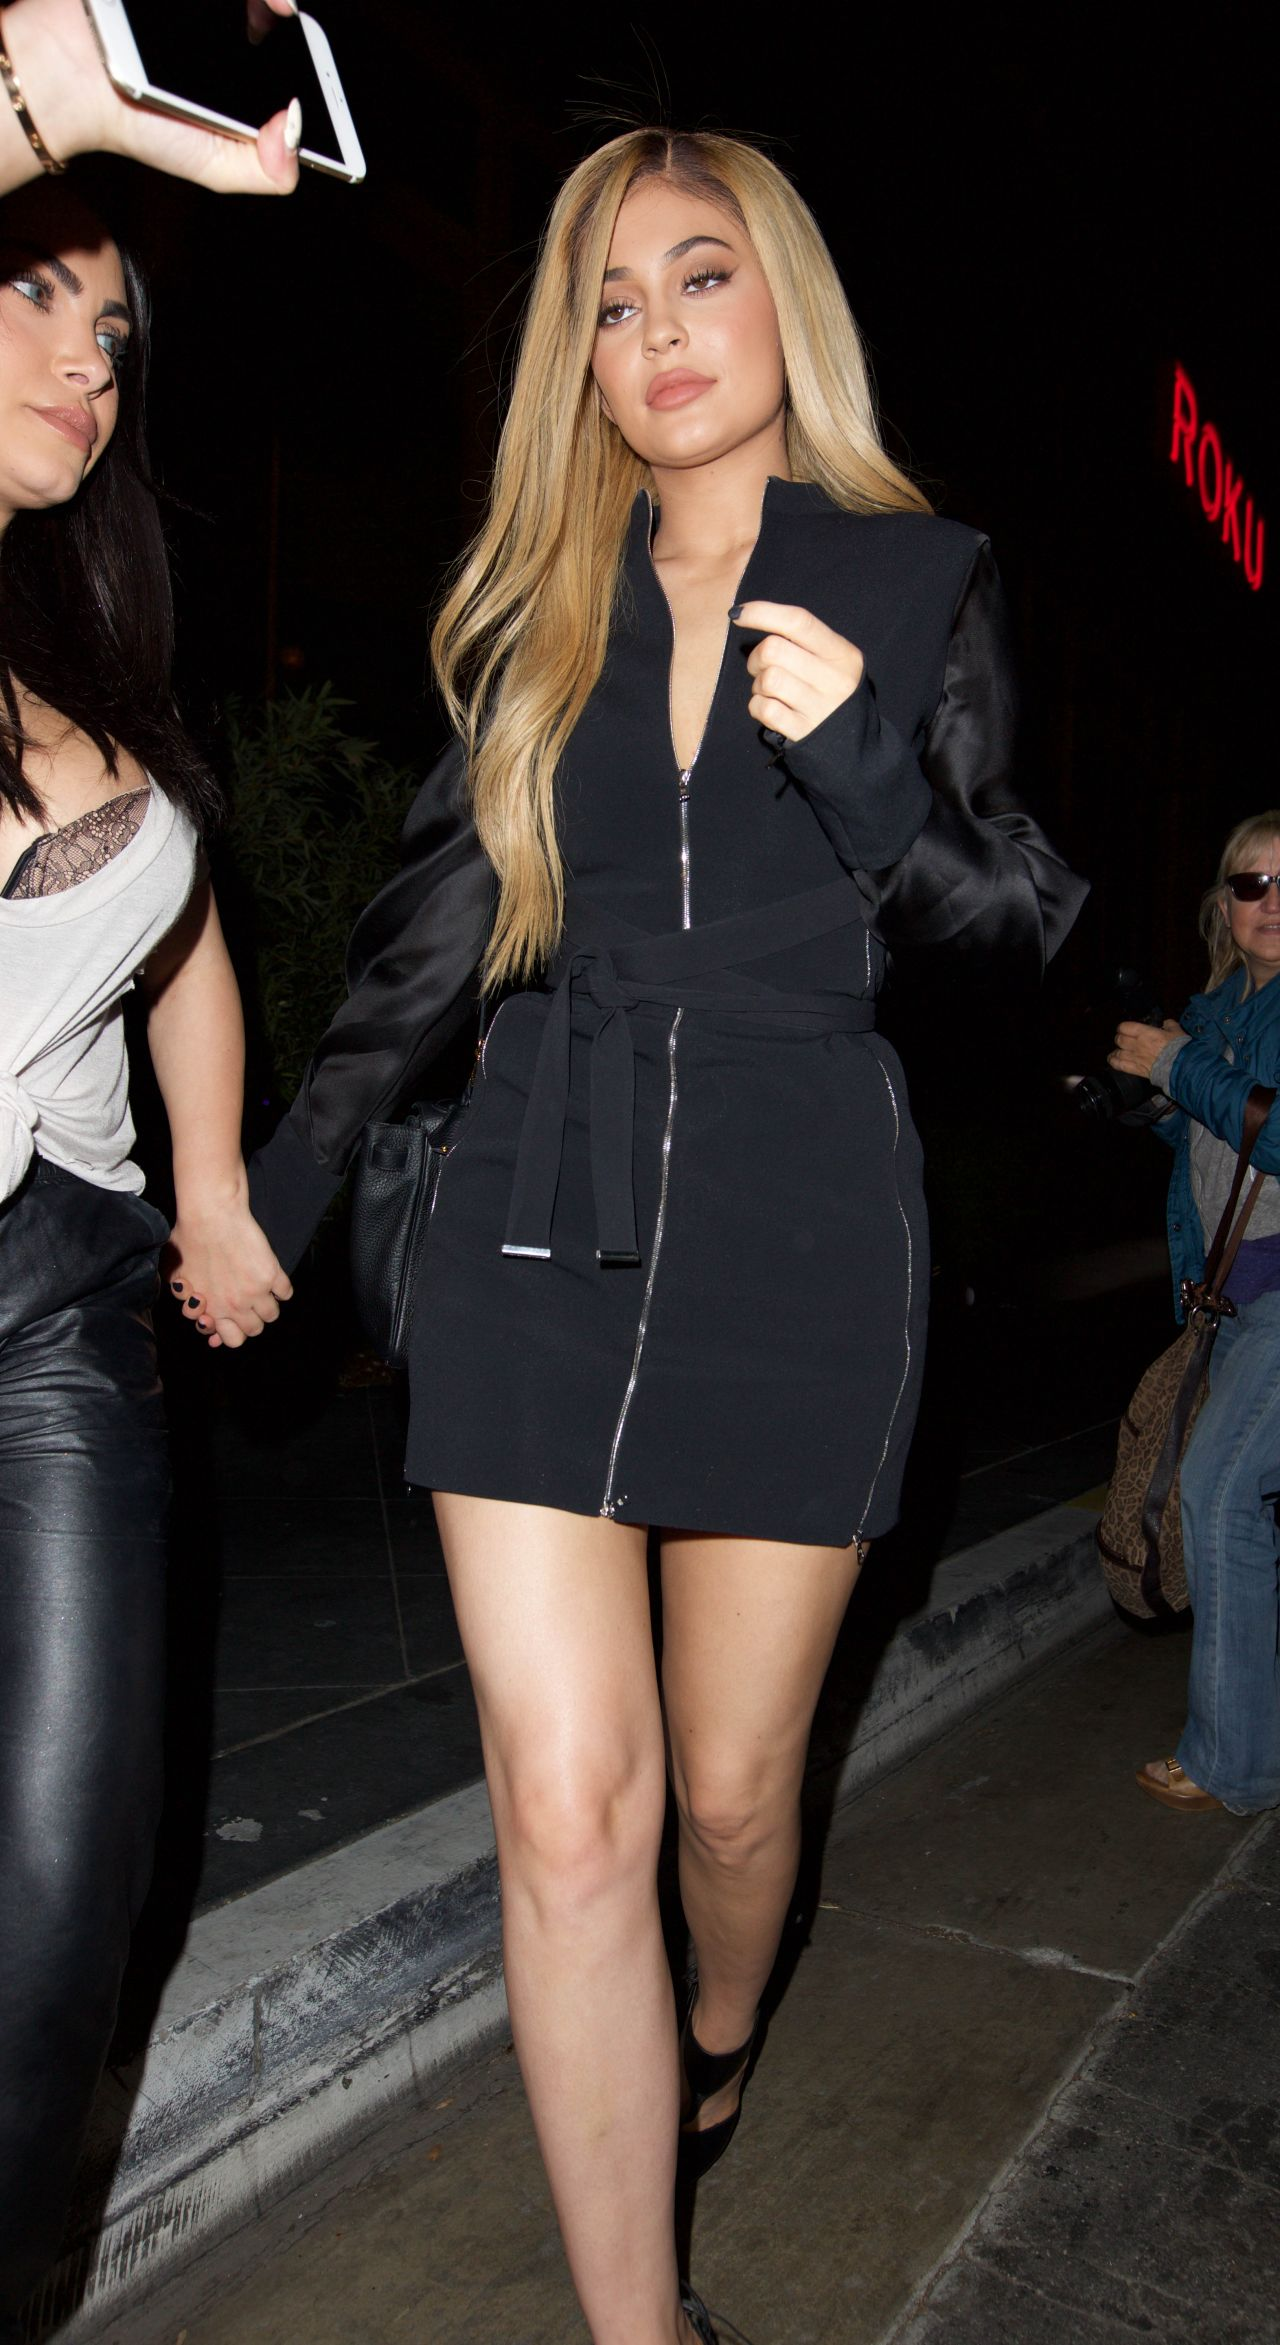 Kylie Jenner Shows Off Her Legs In Black Mini Dress Out